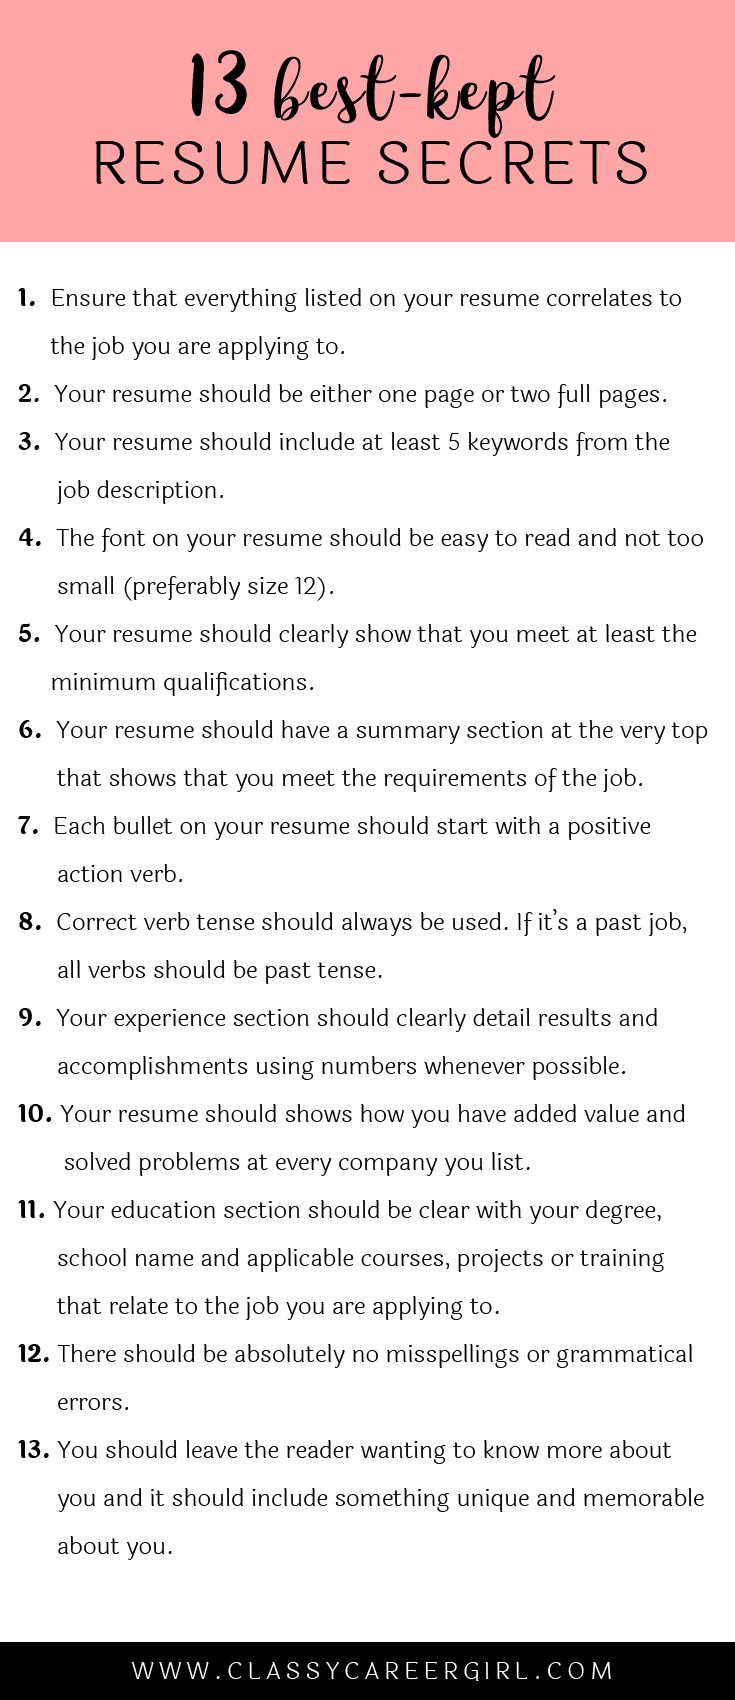 Opposenewapstandardsus  Seductive  Ideas About Resume On Pinterest  Cv Format Resume Cv And  With Inspiring Some Hiring Managers Will Toss Your Resume Out If You Dont Know These  With Appealing Resume T Also Resume Indesign In Addition Resume For Manager Position And Sample Lawyer Resume As Well As Resume Name Examples Additionally A Resume Format From Pinterestcom With Opposenewapstandardsus  Inspiring  Ideas About Resume On Pinterest  Cv Format Resume Cv And  With Appealing Some Hiring Managers Will Toss Your Resume Out If You Dont Know These  And Seductive Resume T Also Resume Indesign In Addition Resume For Manager Position From Pinterestcom